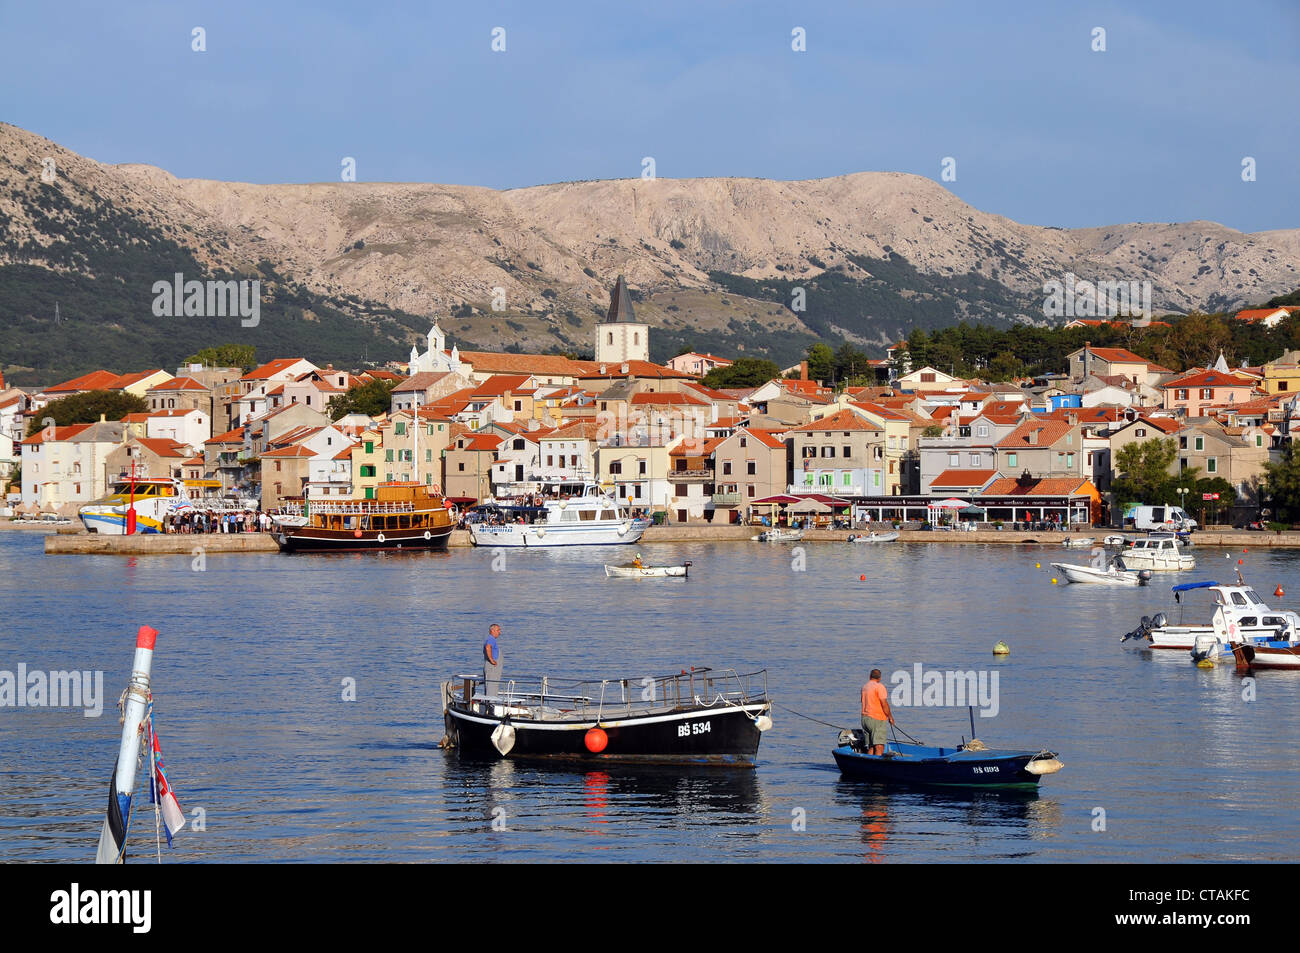 View towards Baska, Krk Island, Kvarnen Gulf, Croatia - Stock Image